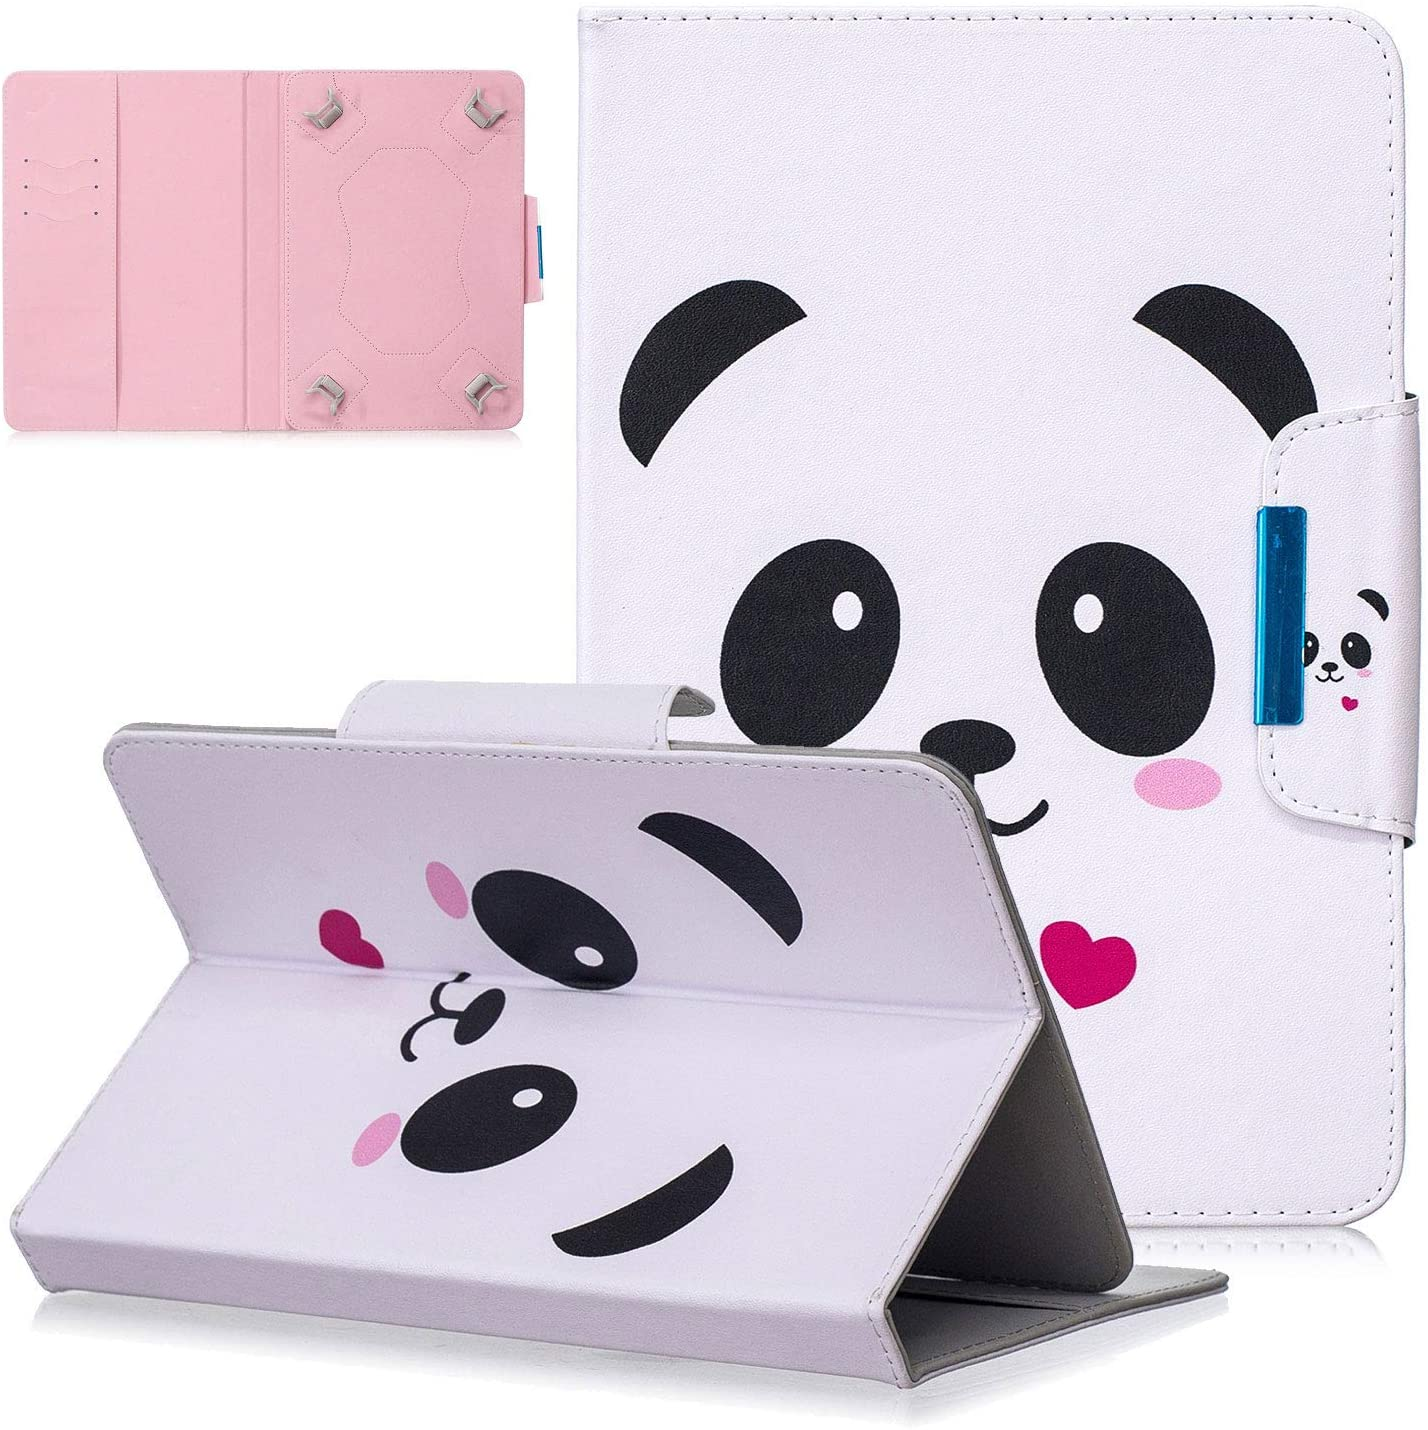 UGOcase 8.0 inch Universal Case, PU Leather Folio Protective Stand Cover with Wallet Casefor All 7.5-8.5 inch 7.5-8.5 inch iPad Mini, Samsung Galaxy Tab A 8.0, DHgate Fire HD 8, Love Panda